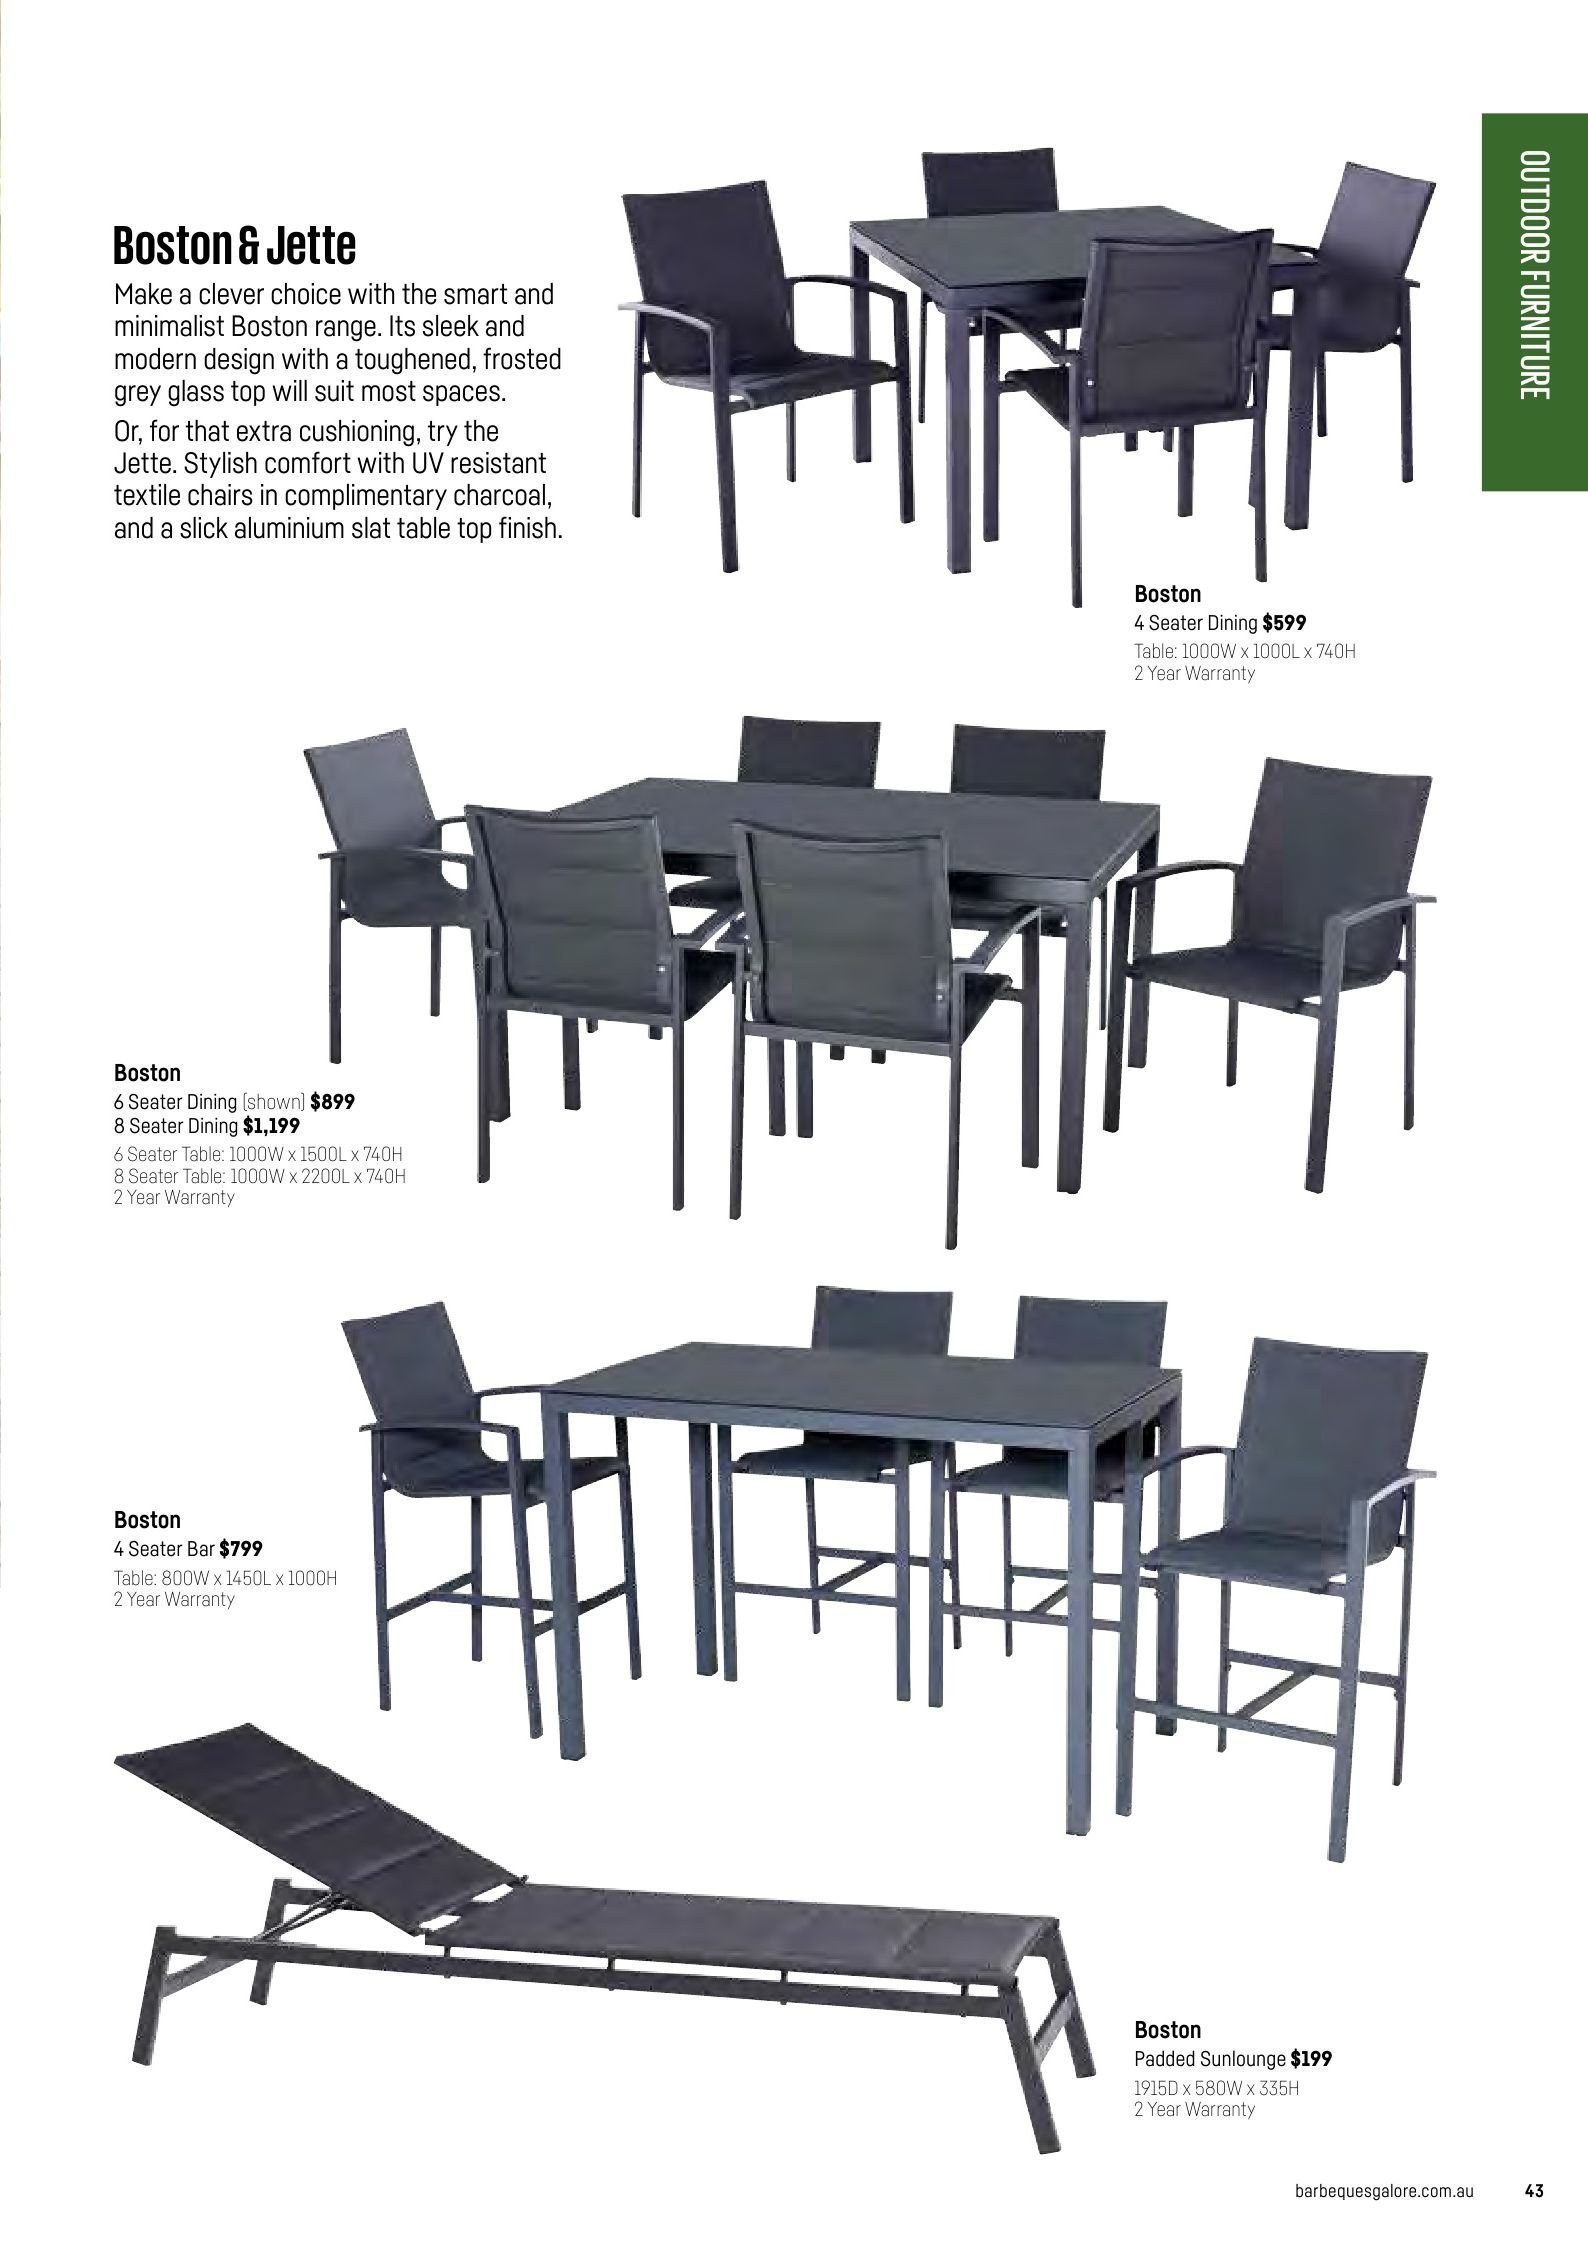 Barbeques galore catalogue sales products table chair charcoal page 45